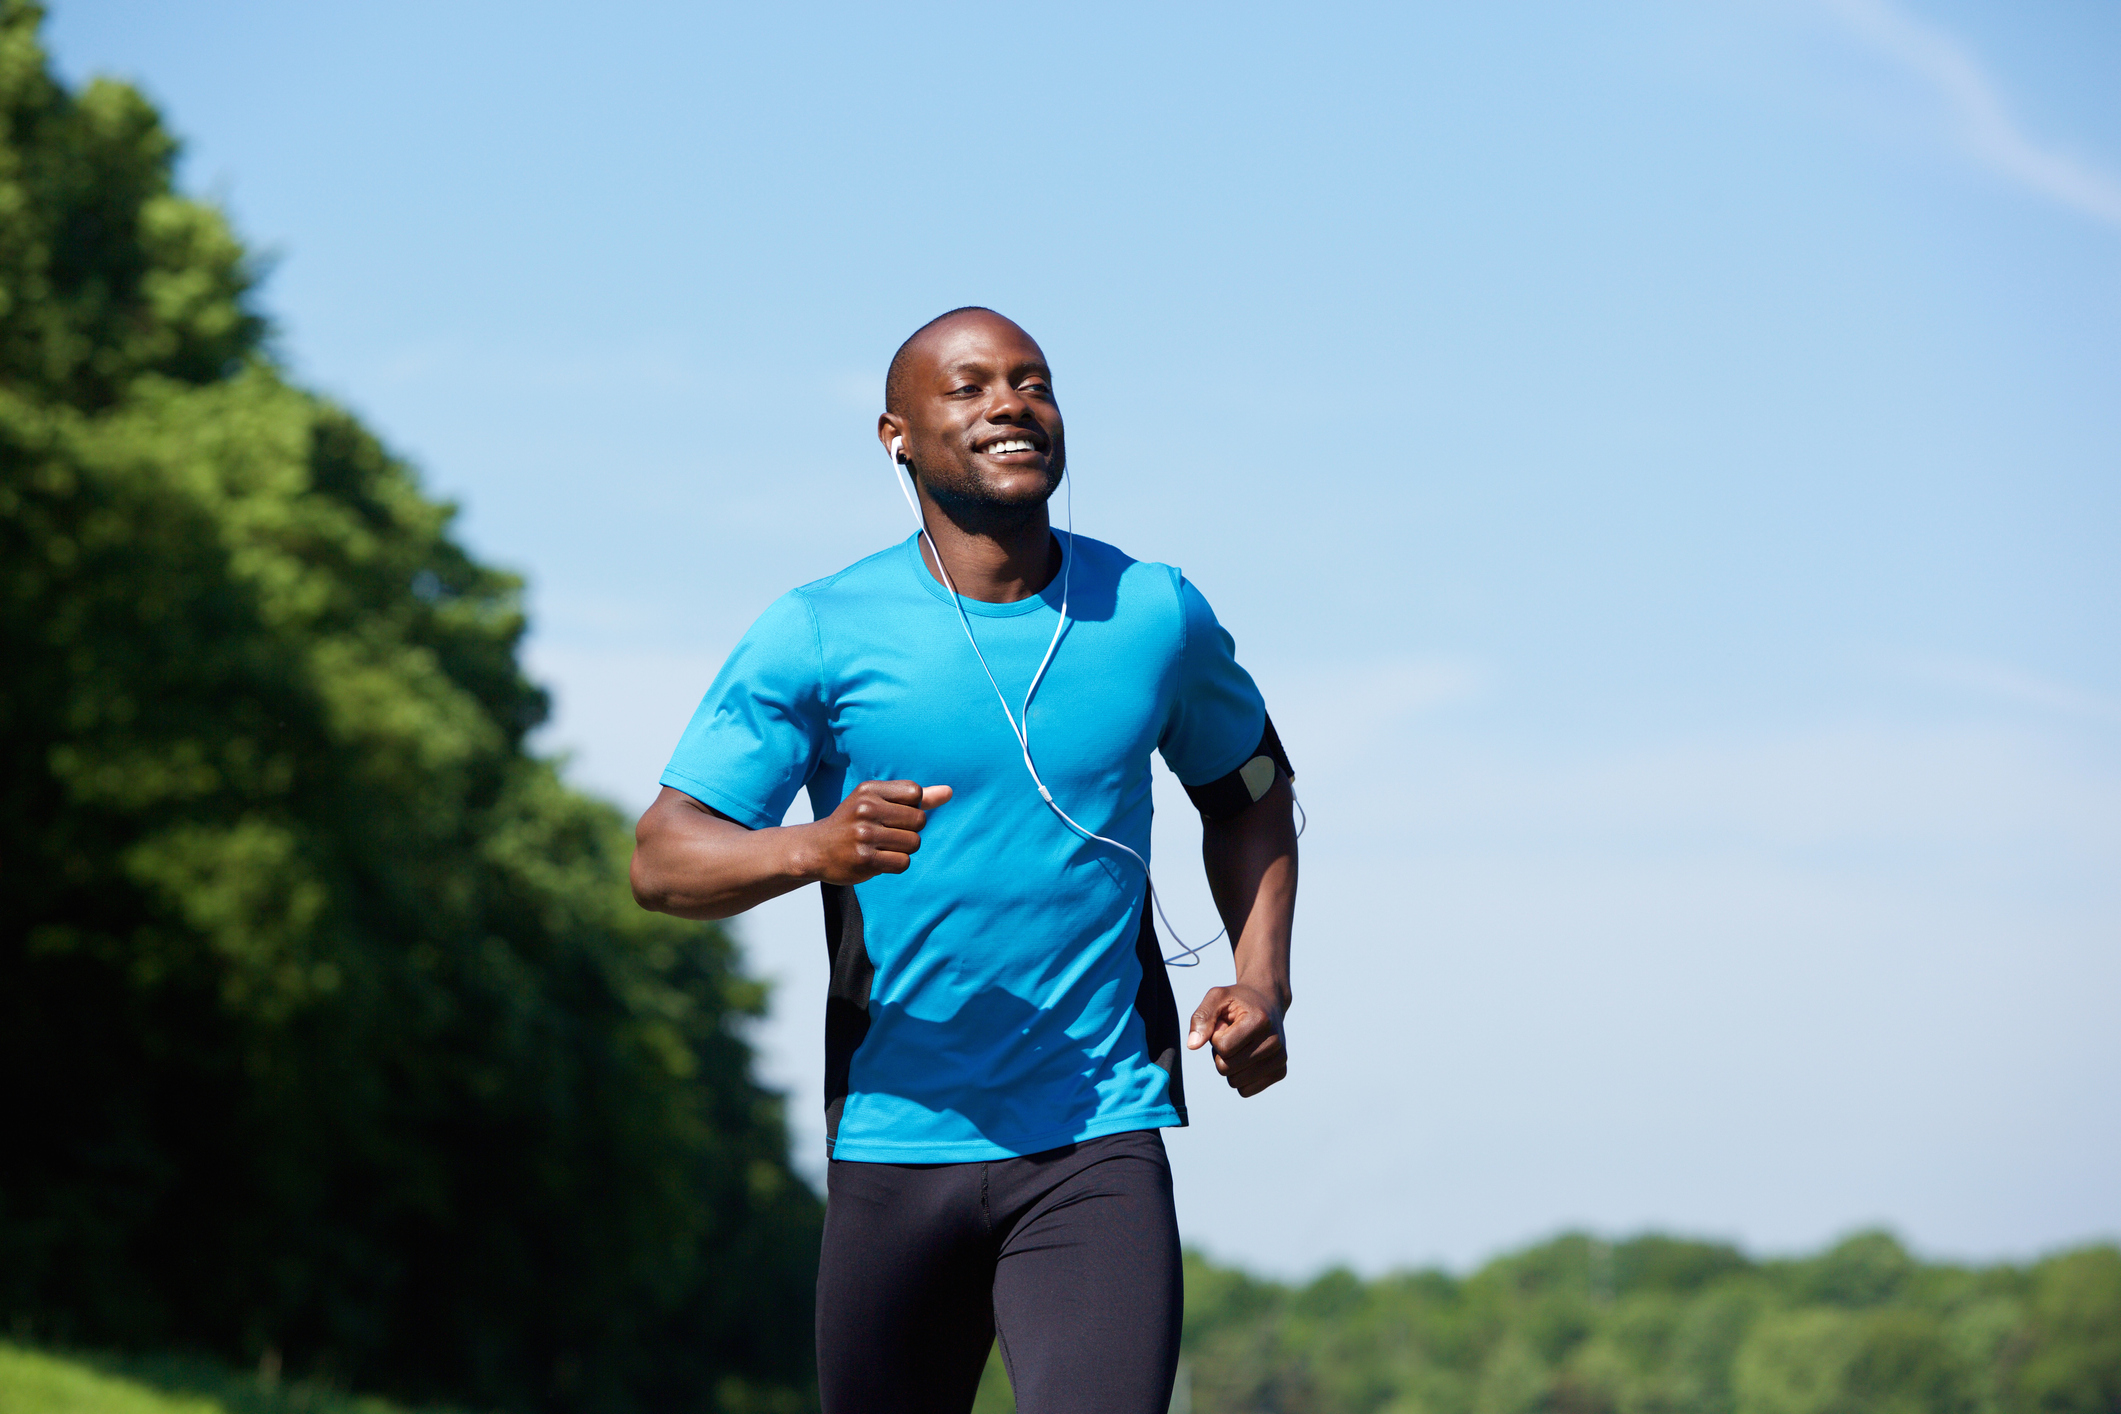 Black man exercising outdoors in the park